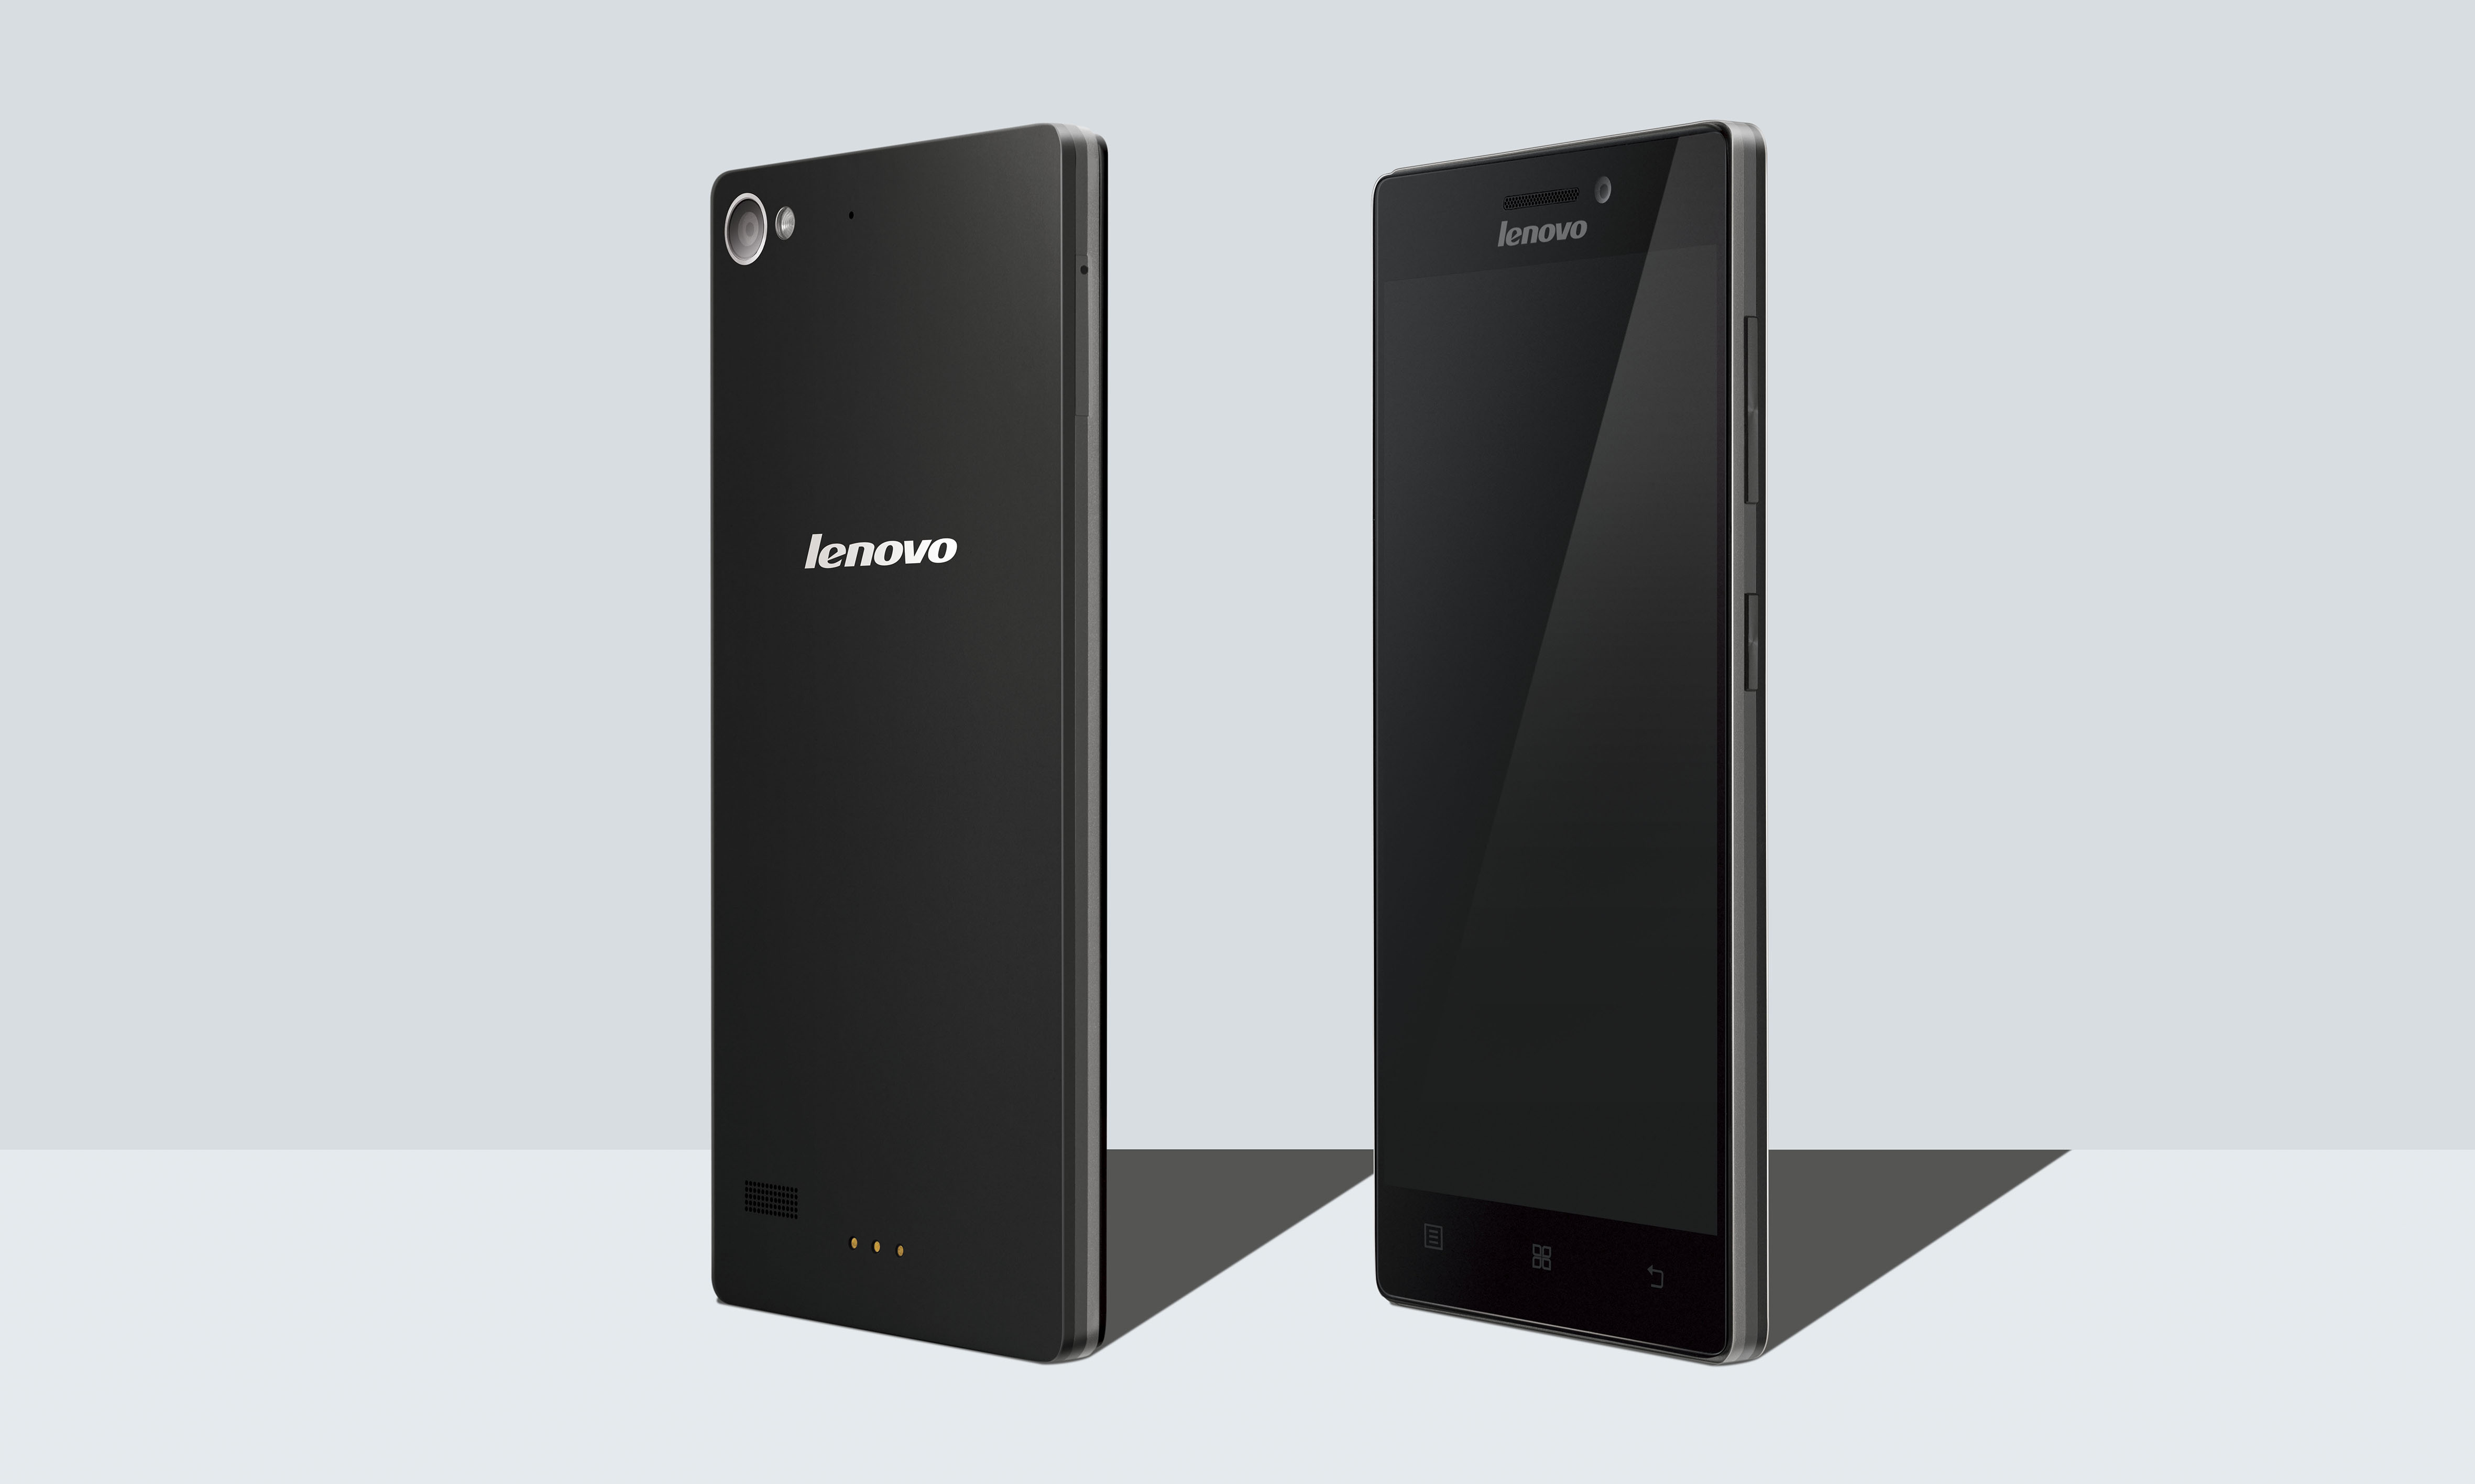 Lenovo Smartphones Getting Android P Update